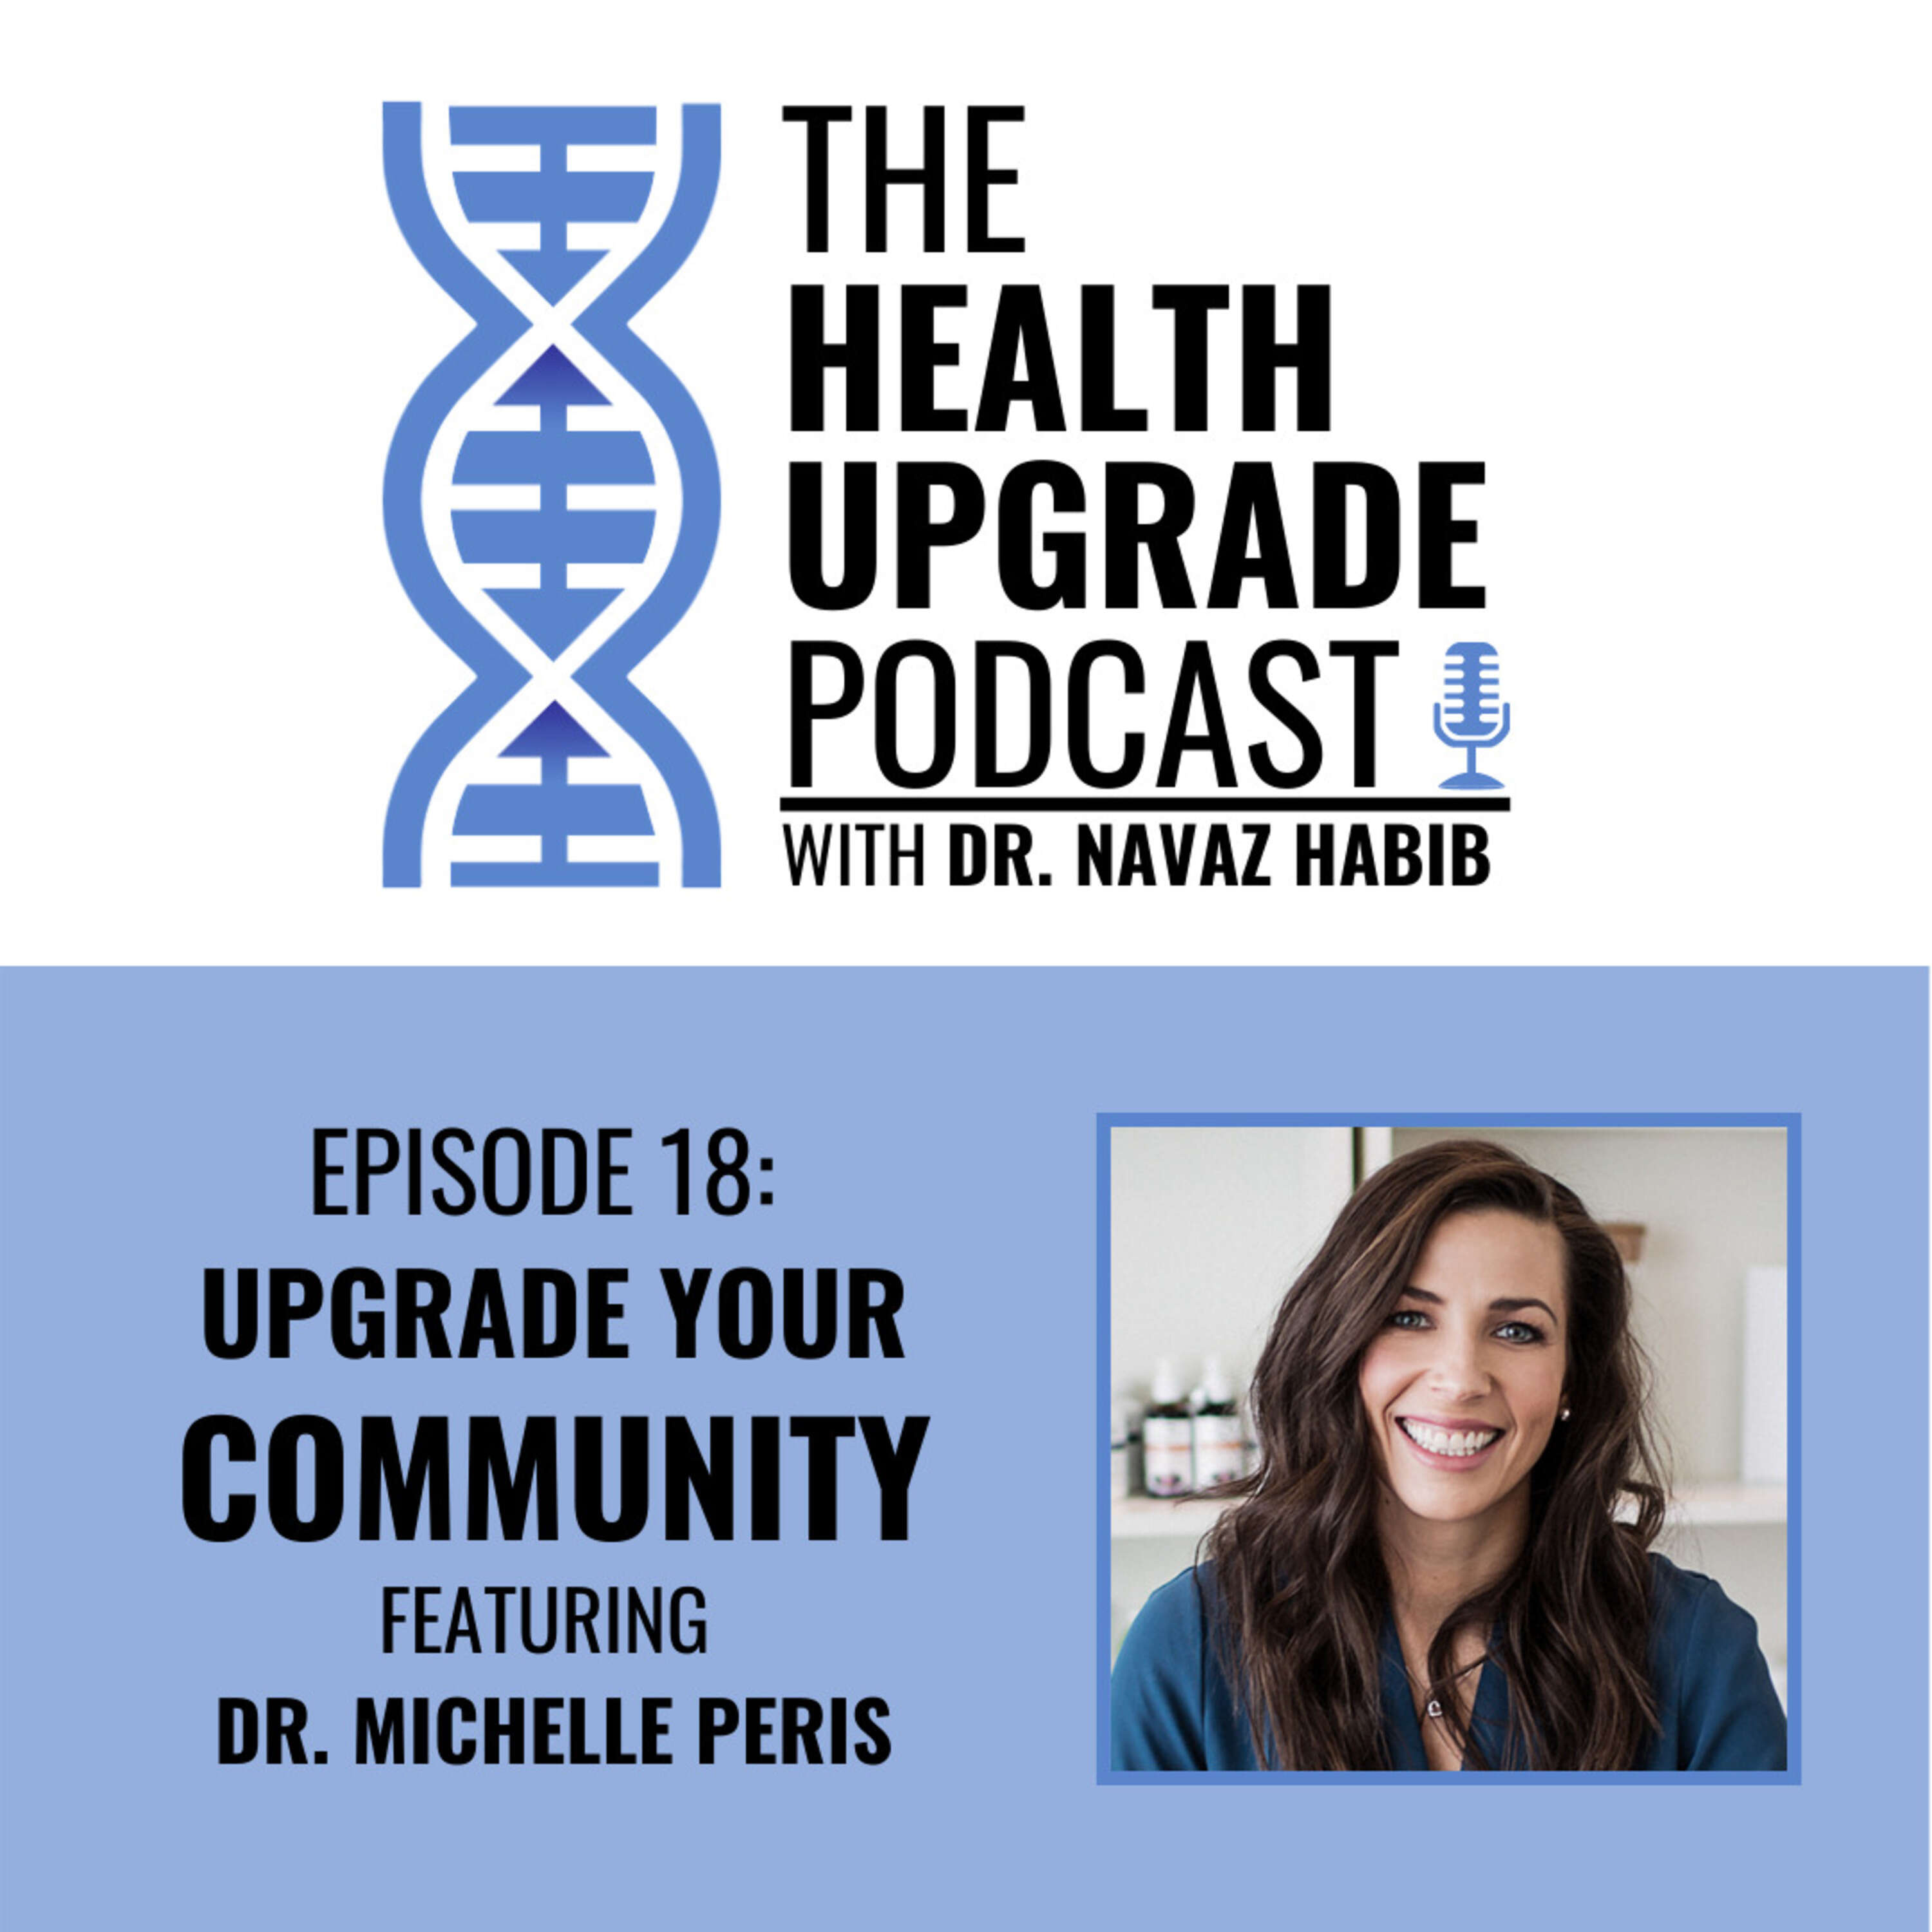 Upgrade your community - featuring dr. Michelle Peris